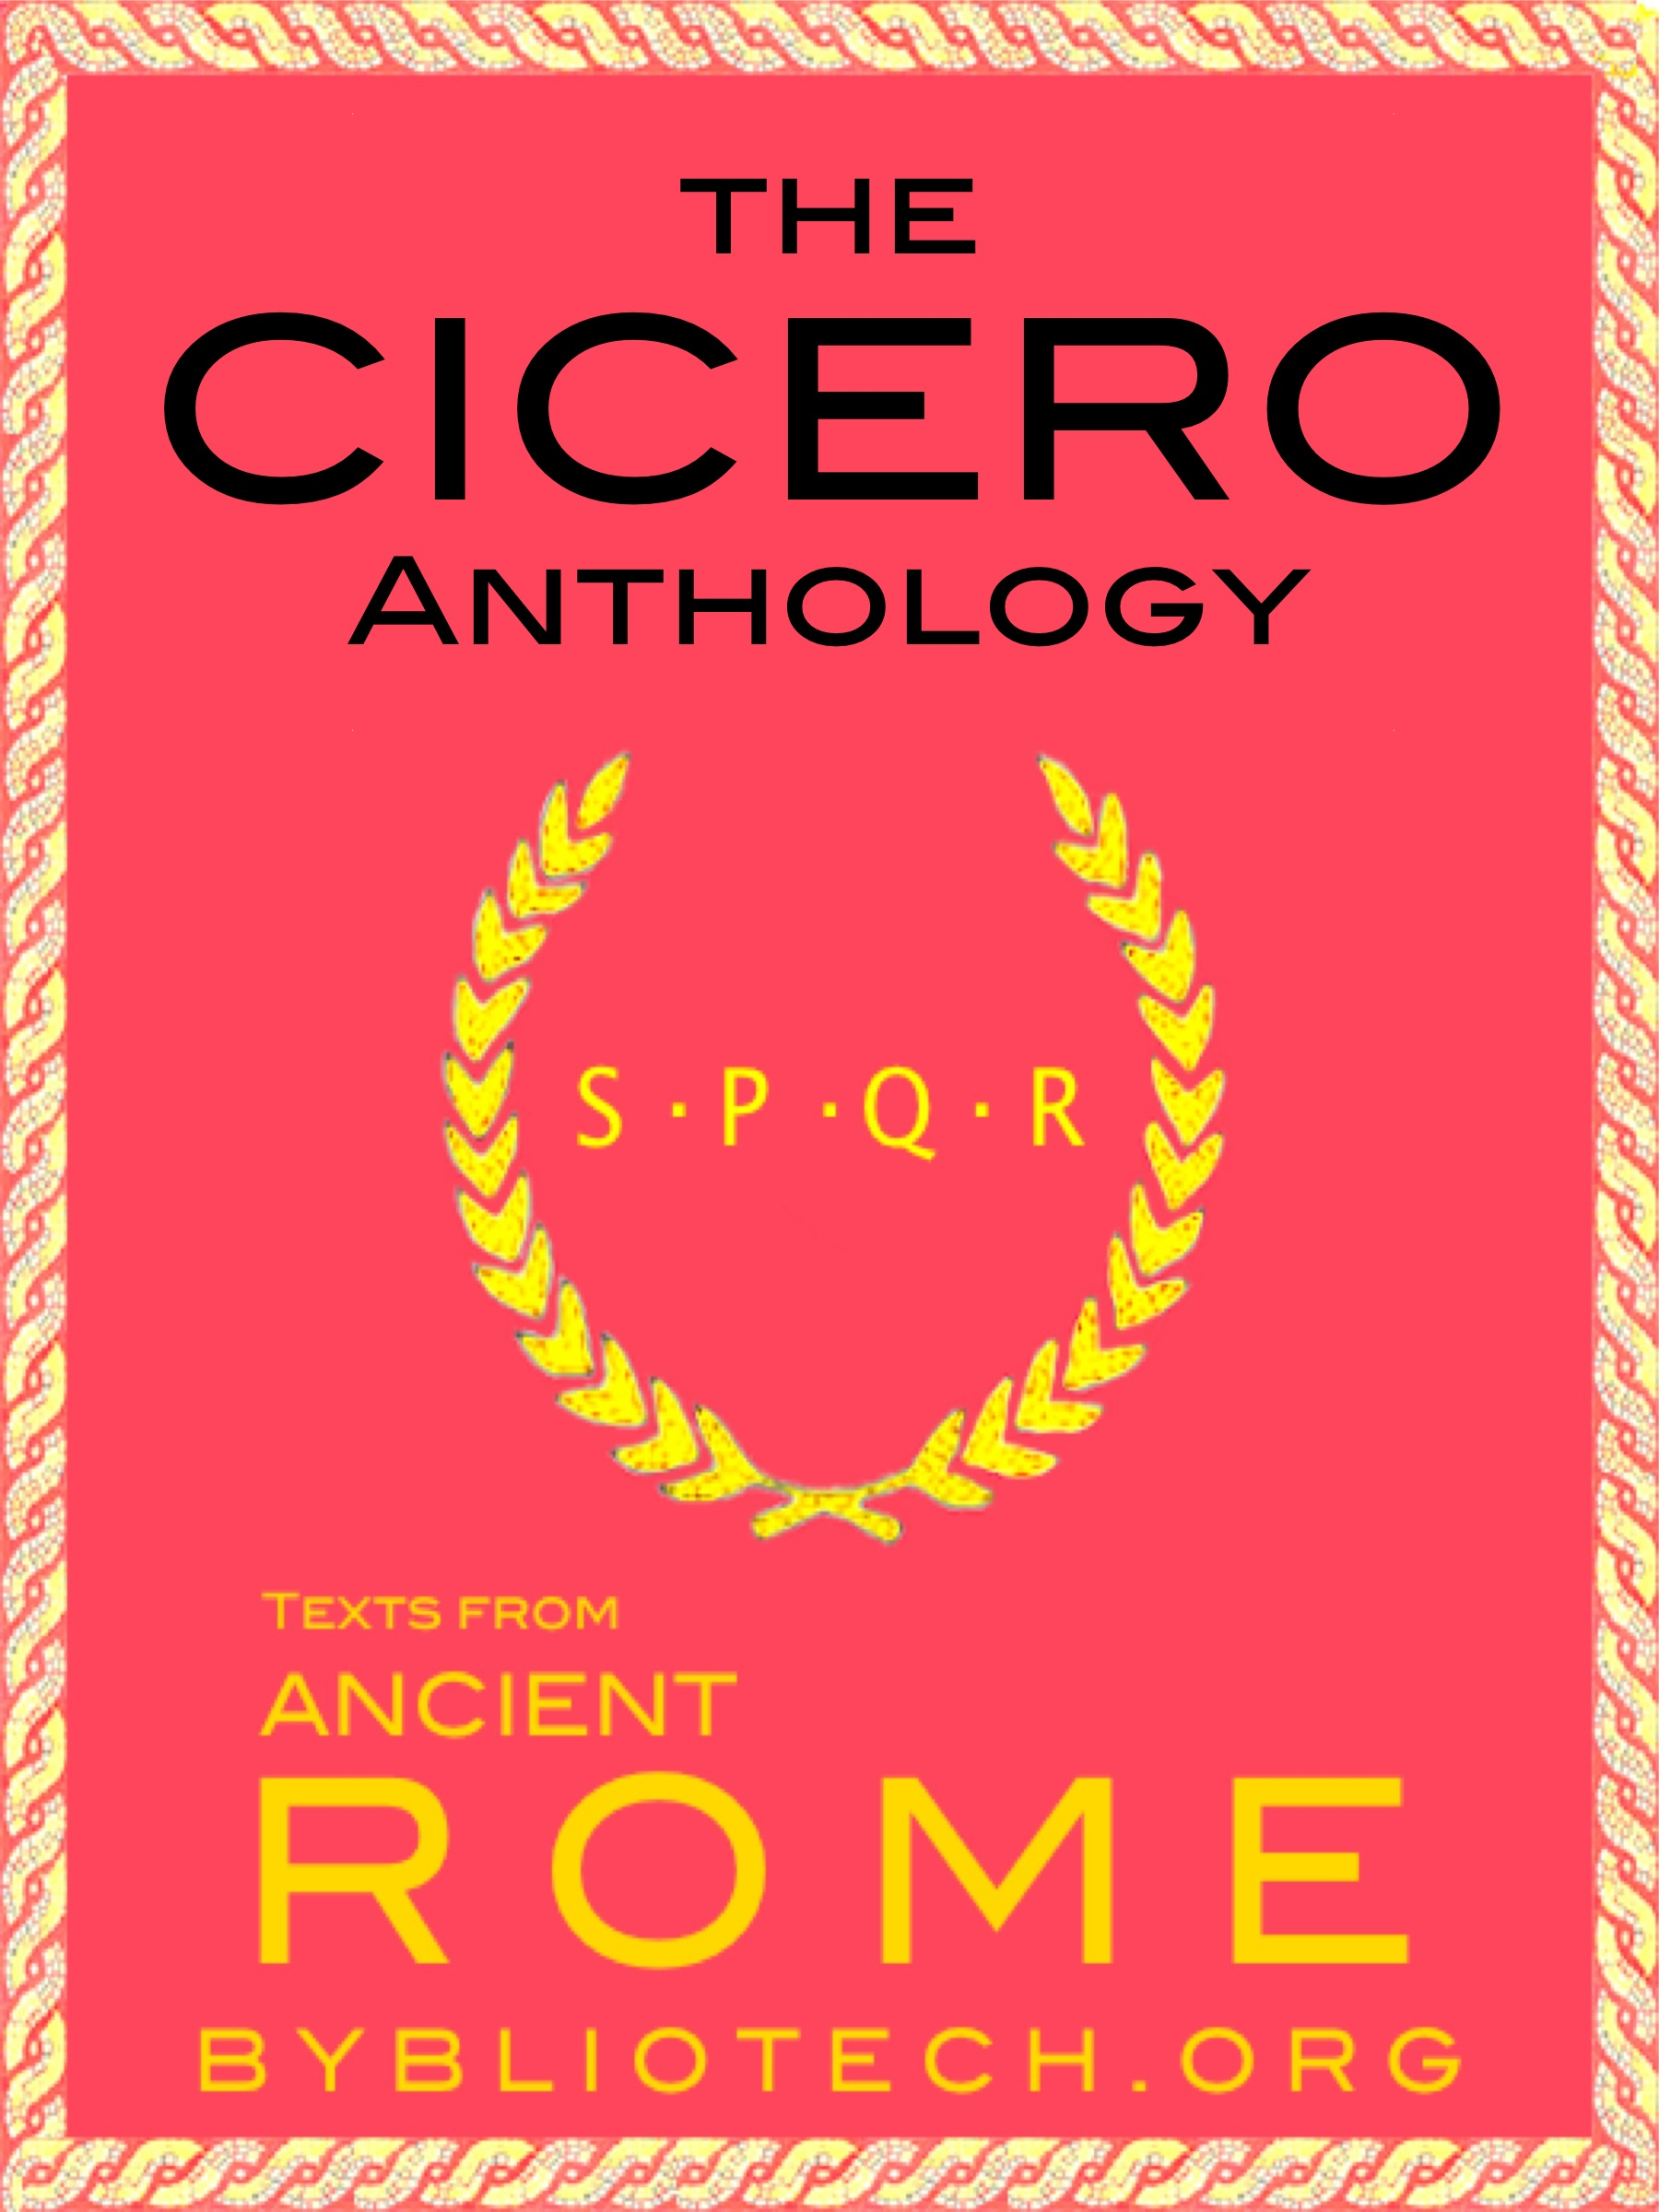 The Cicero Anthology